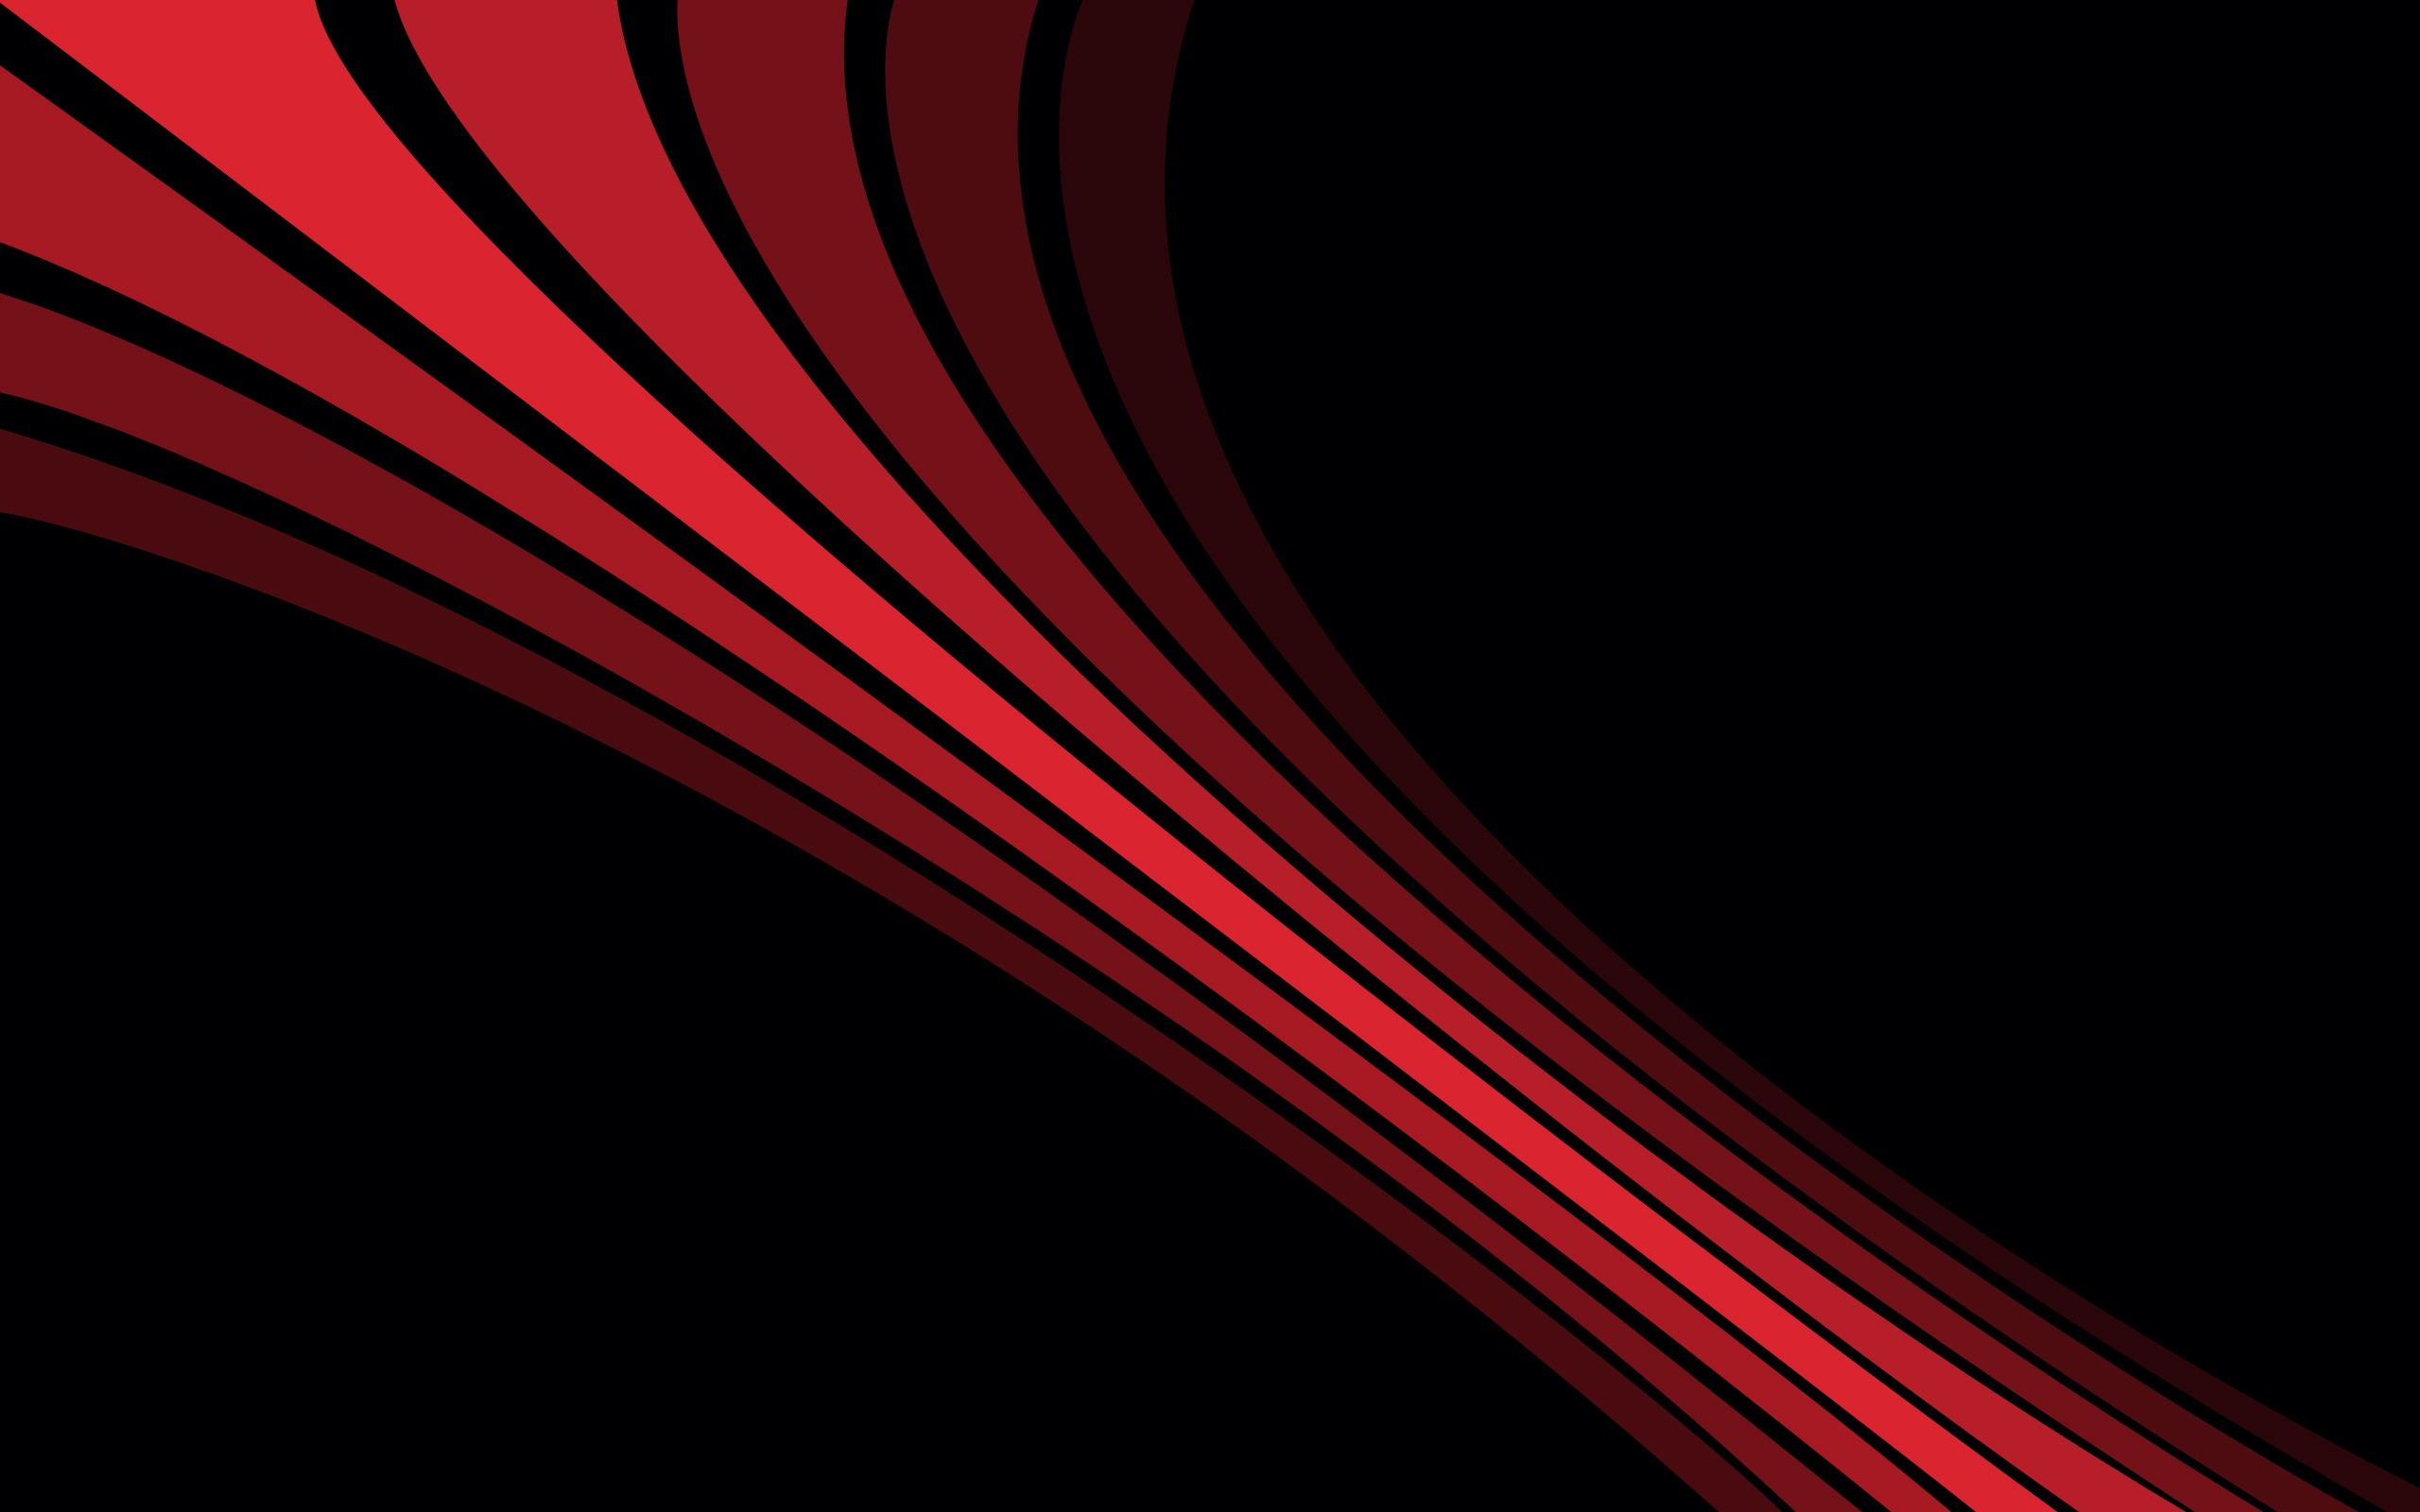 Black Wallpaper Iphone: Red And Black Wallpaper ·① Download Free Cool Backgrounds